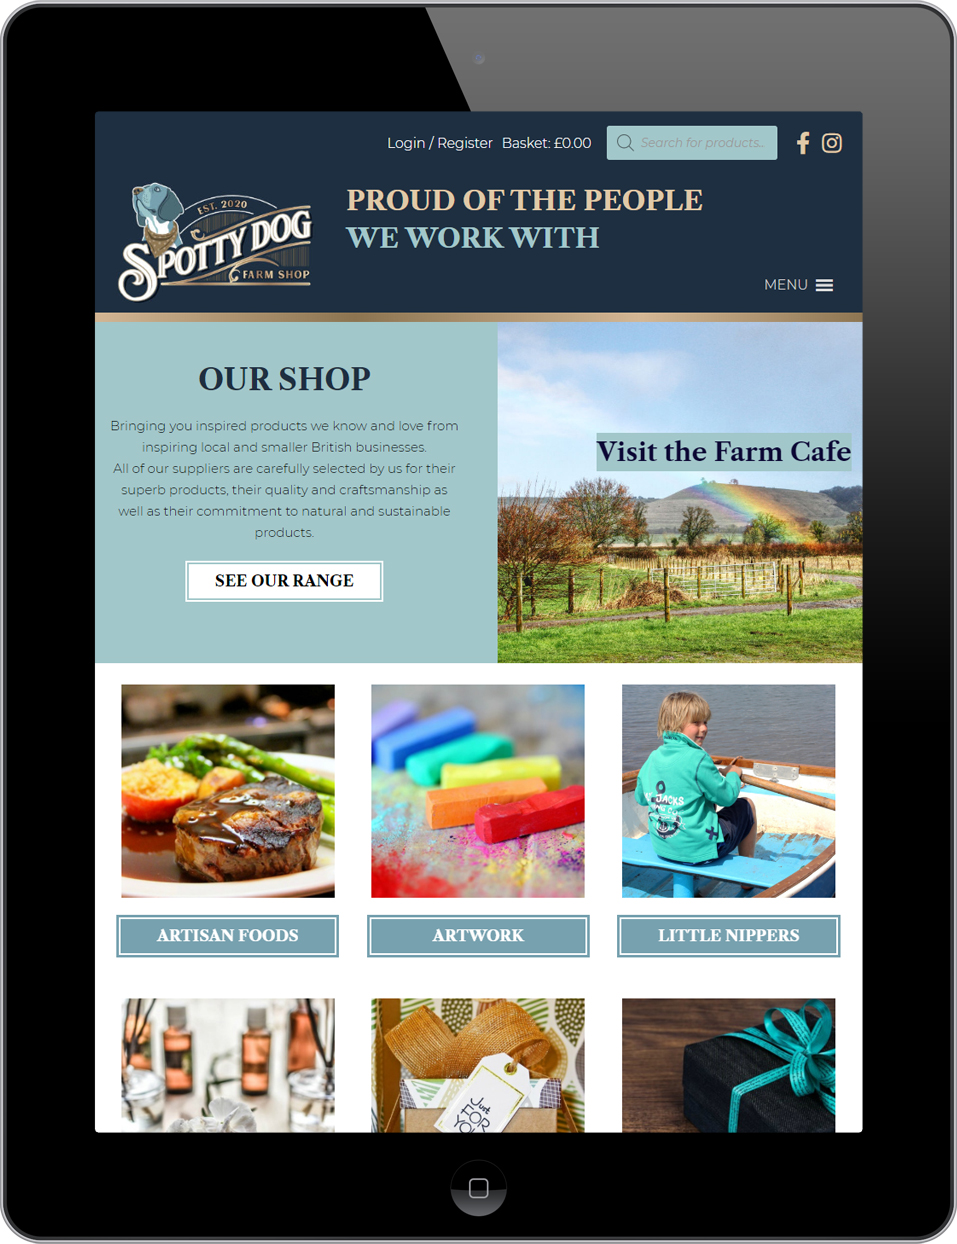 Responsive web design for Spotty Dog Farm Shop